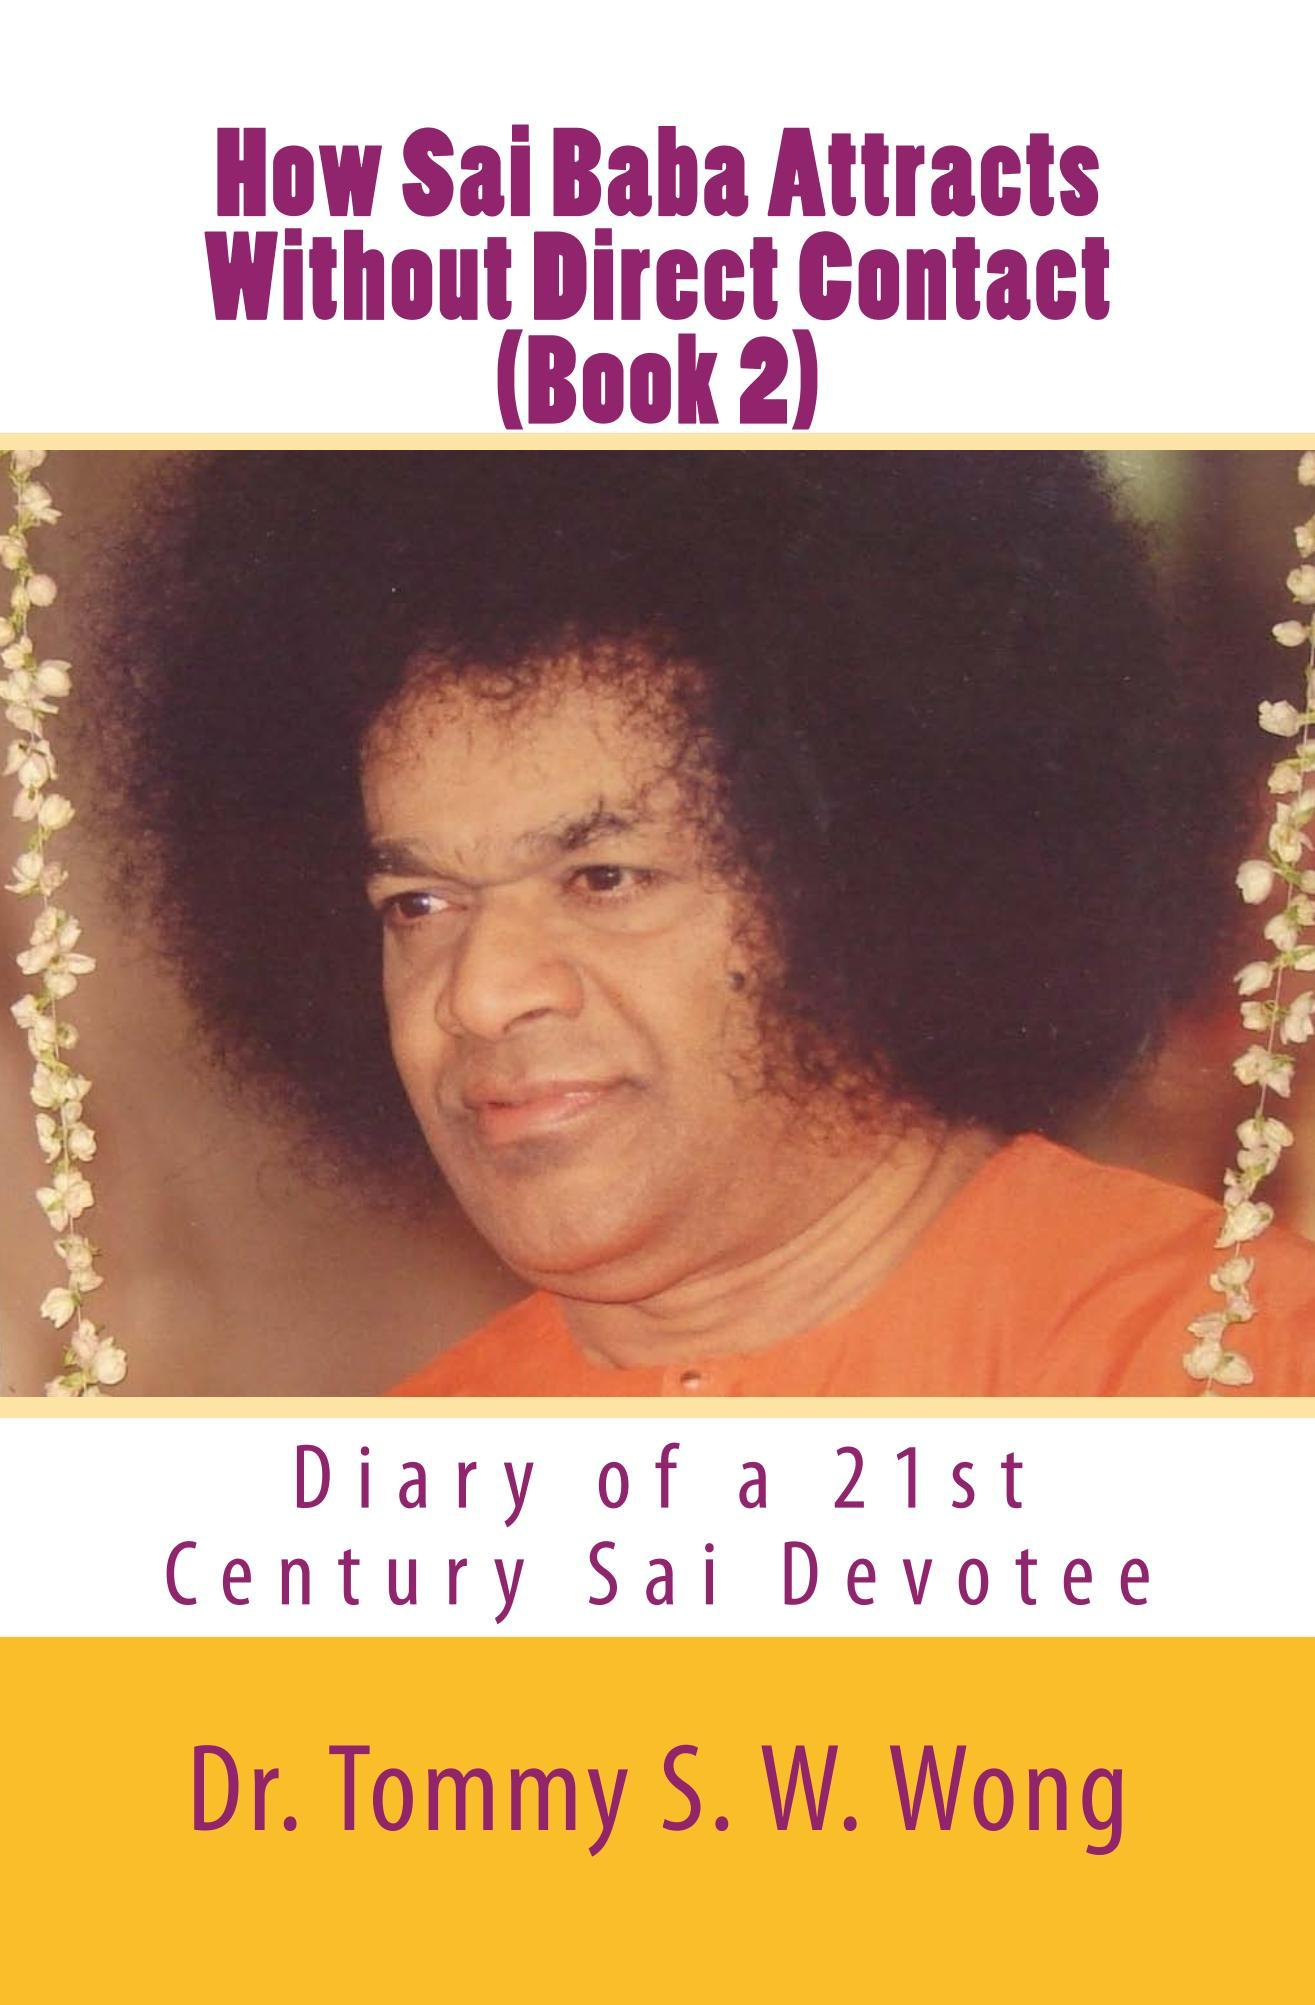 How Sai Baba Attracts Without Direct Contact (Book 2): Diary of a 21st Century Sai Devotee By: Tommy S. W. Wong